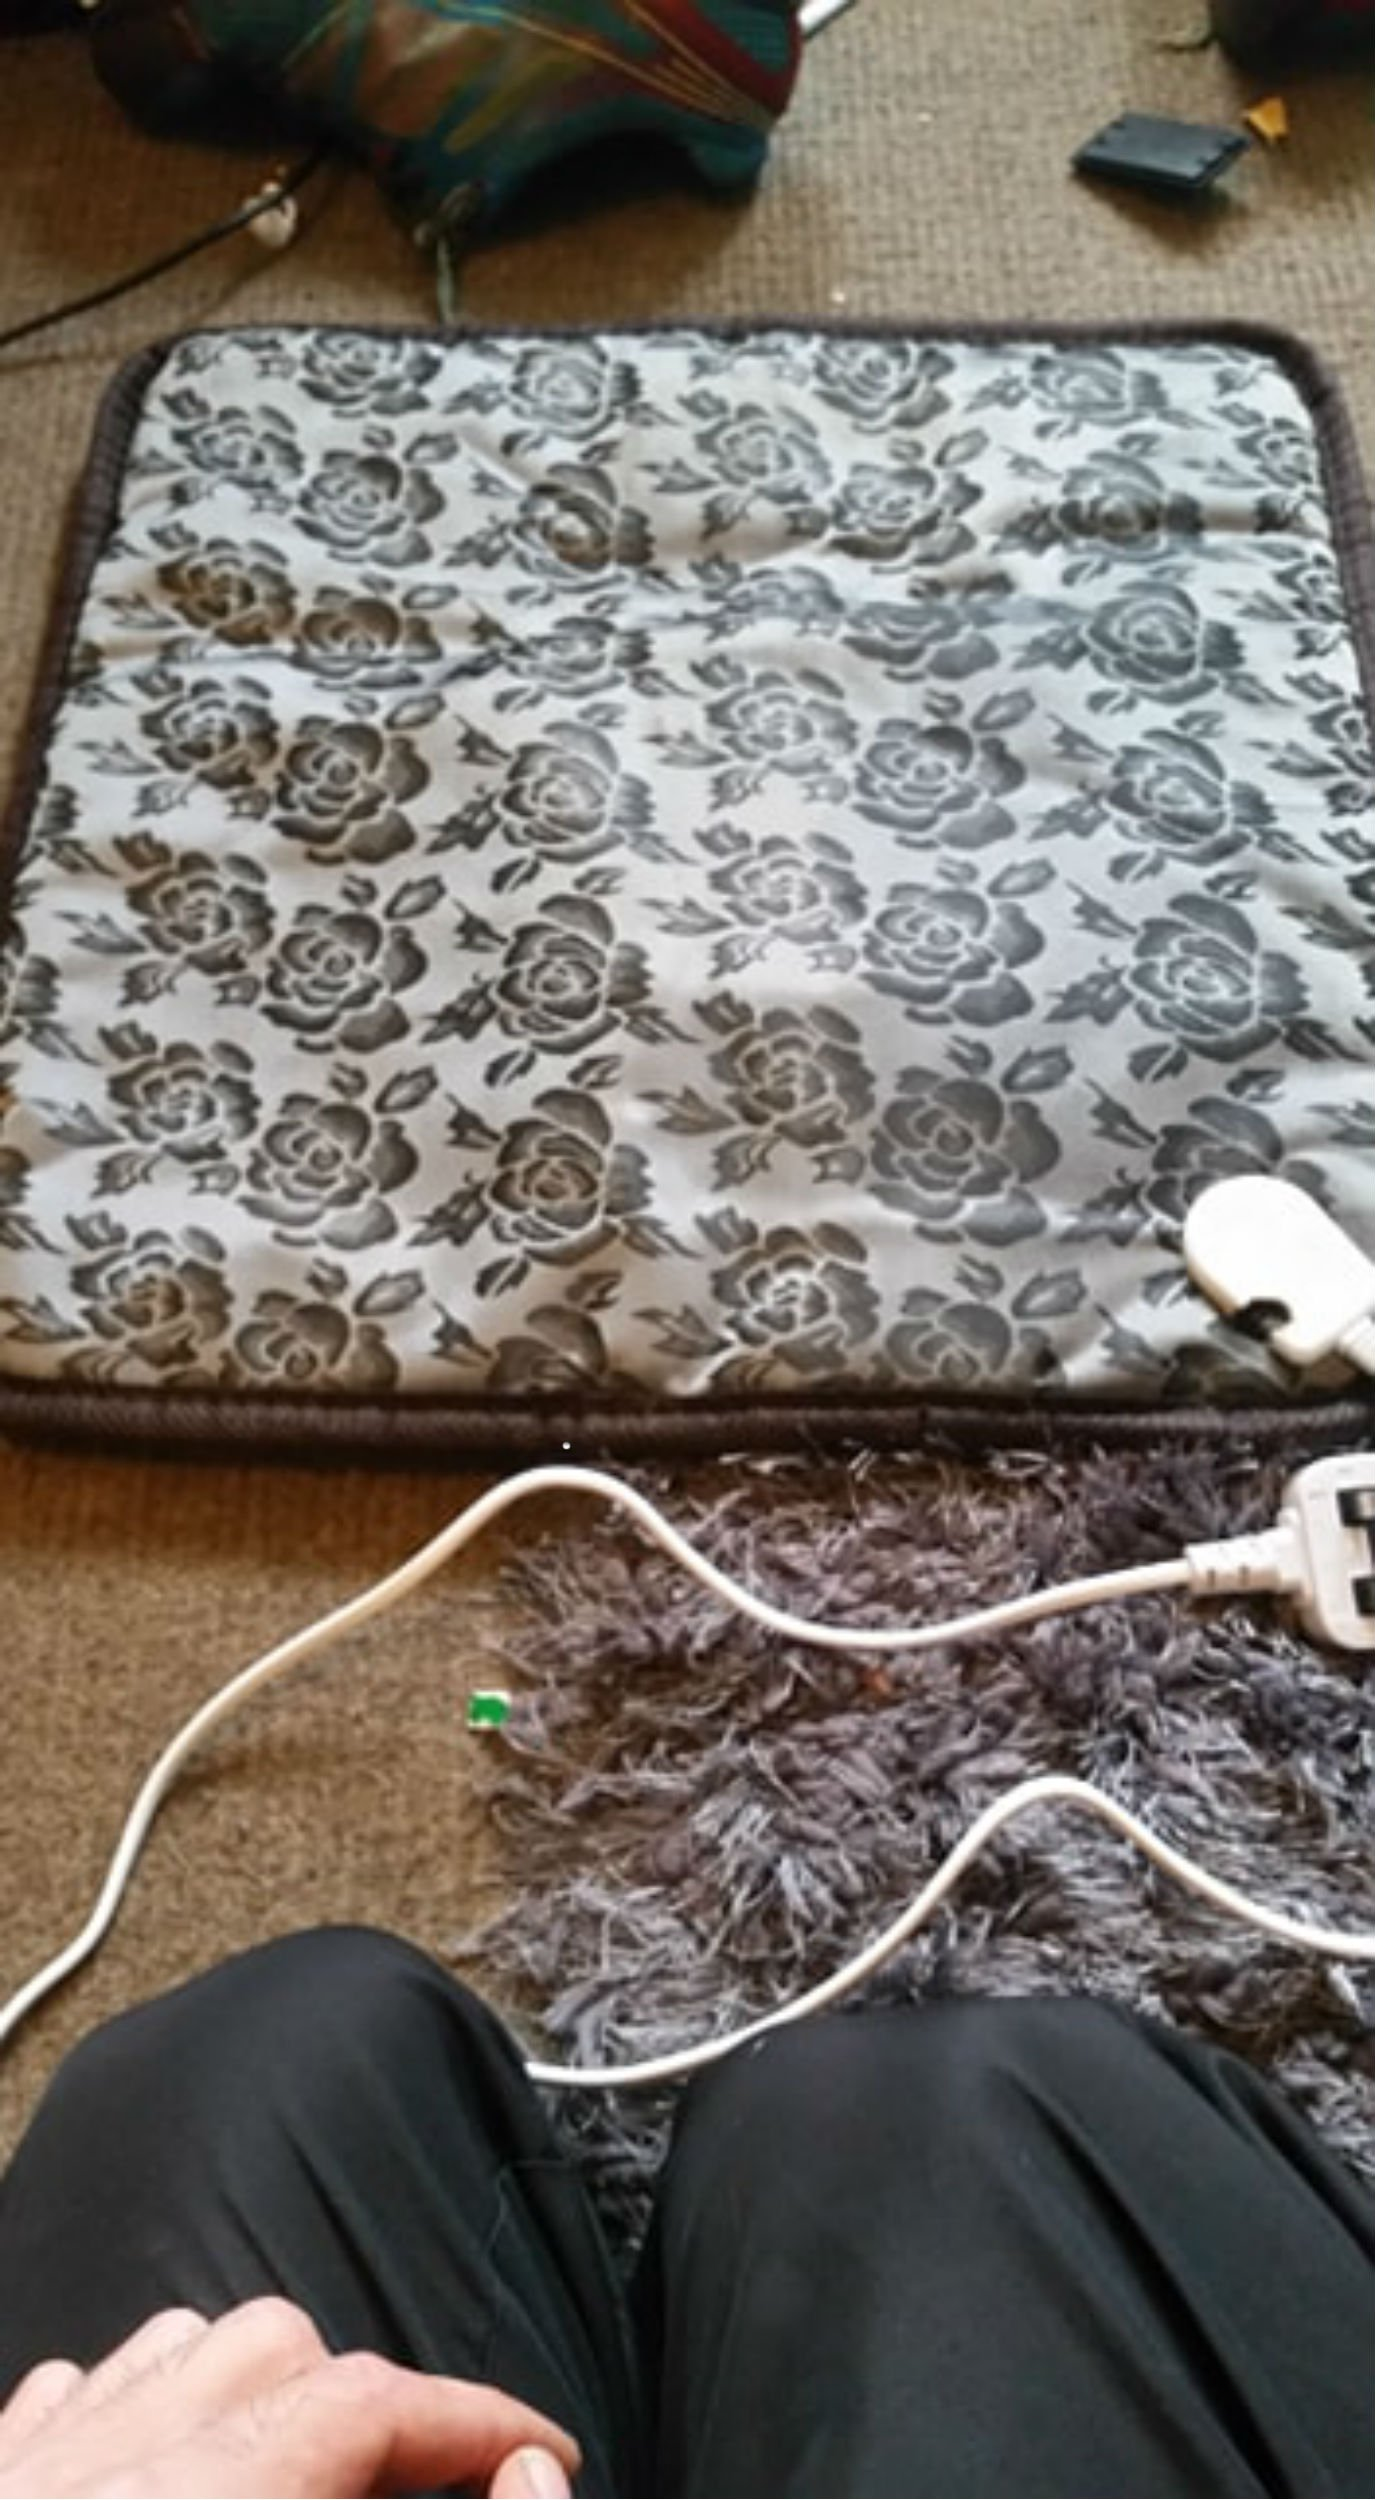 """AMAZON have removed an animal heating pad from sale after it caught fire and killed four three-day-old kittens. And the devastated owner of the kittens claims her life was only saved when the distressed mother cat woke her up in the middle of the night. Belinda Carr spent ?15.99 on a HUAYUU pet heating pad from Amazon to keep the newborn Sphynx kittens warm at her home in Telford, Shropshire. Disaster struck on September 24, the day the product arrived, just hours after the hairless kittens were settled to sleep. Belinda, 59, woke in the middle of the night to find the kittens' mother, Vito, rubbing her face, something the cat never does. She caught a smell of """"burnt sugar"""" and went to investigate. The pad and carpet had caught fire and four of the five kittens were dead from the heat."""